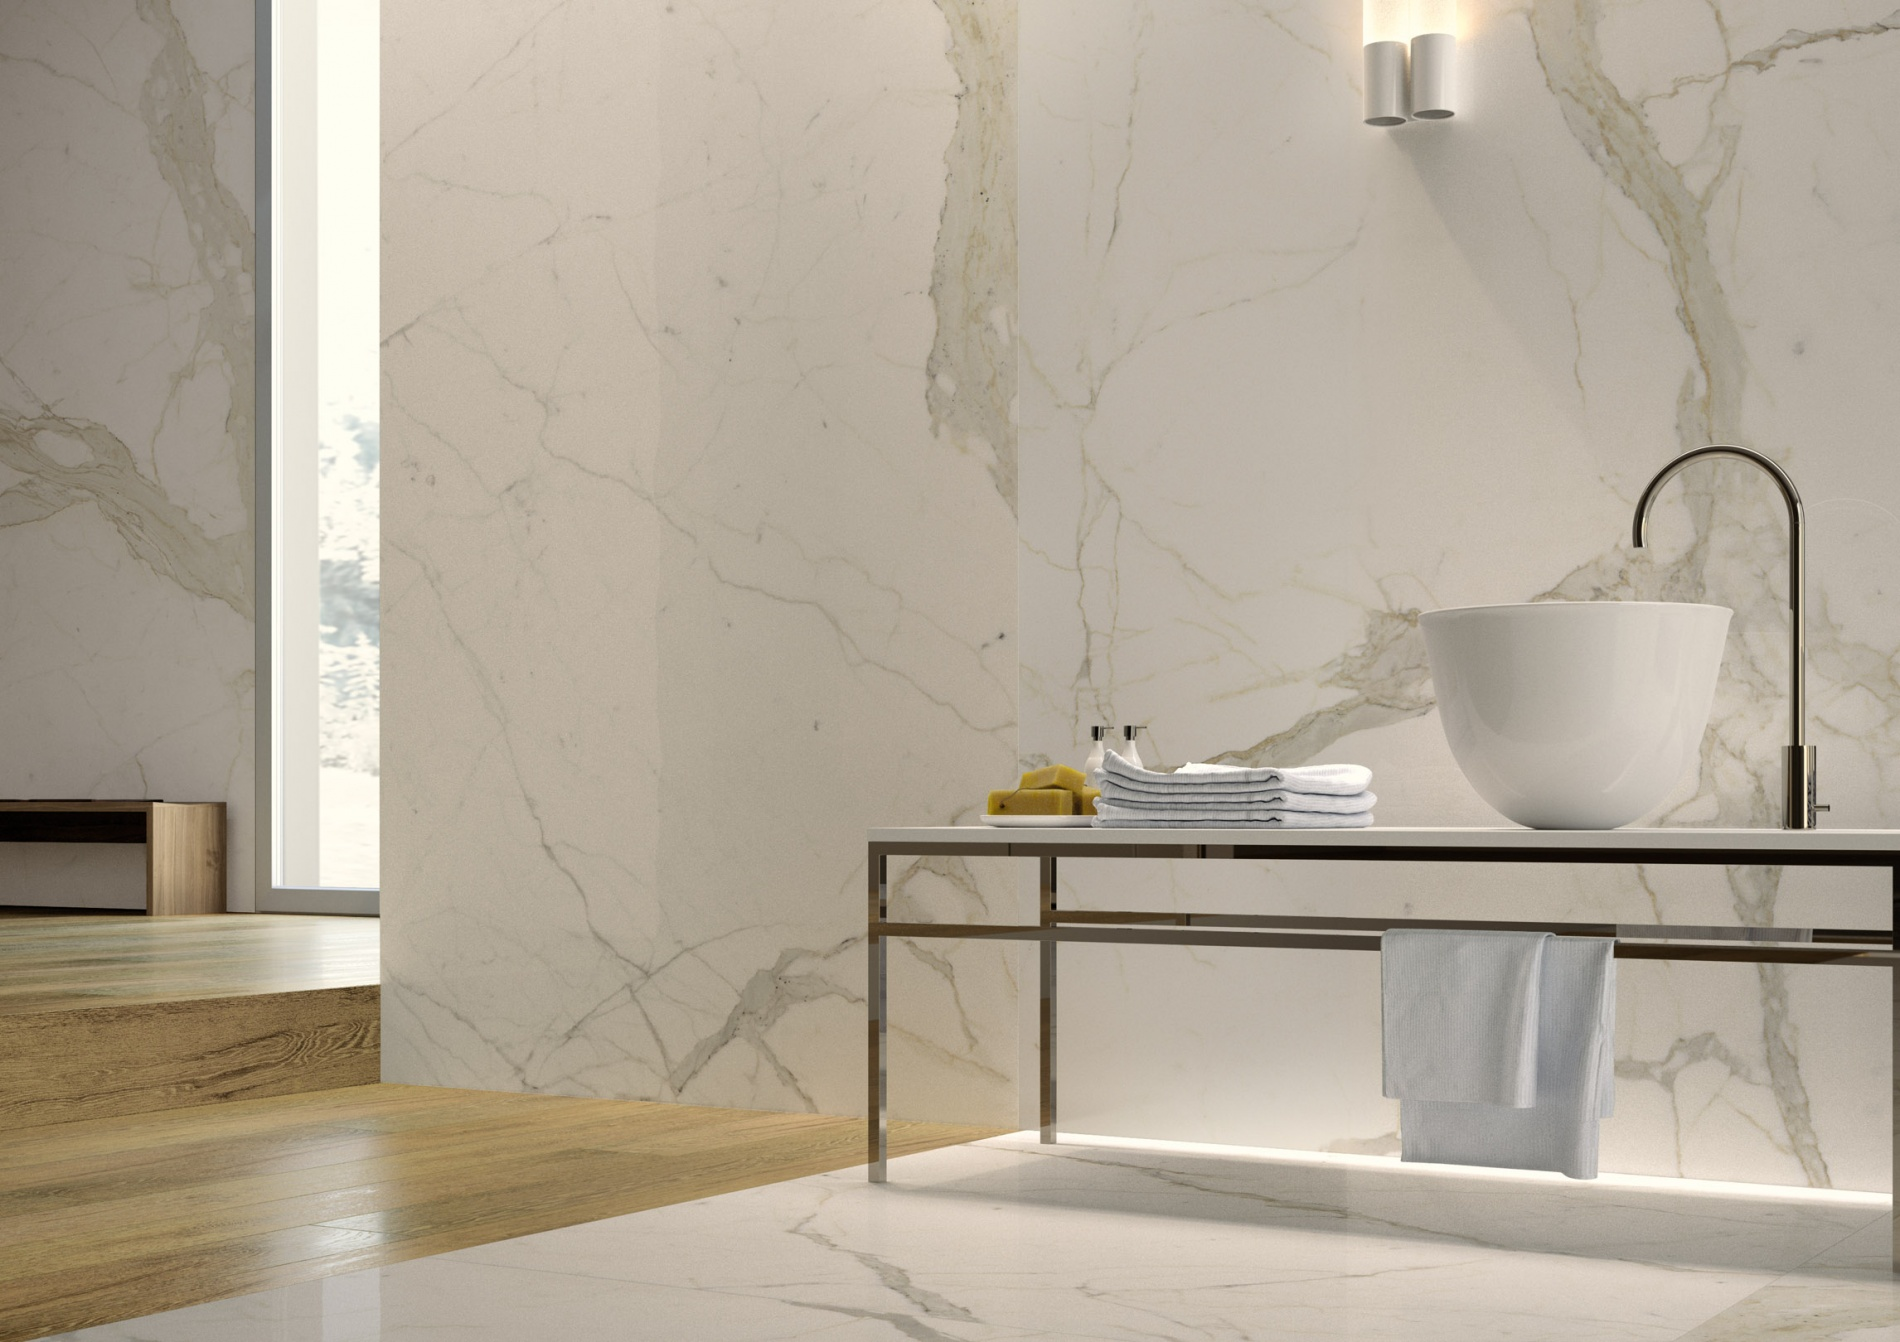 Introducing Stone Sense A New Marble Effect Porcelain